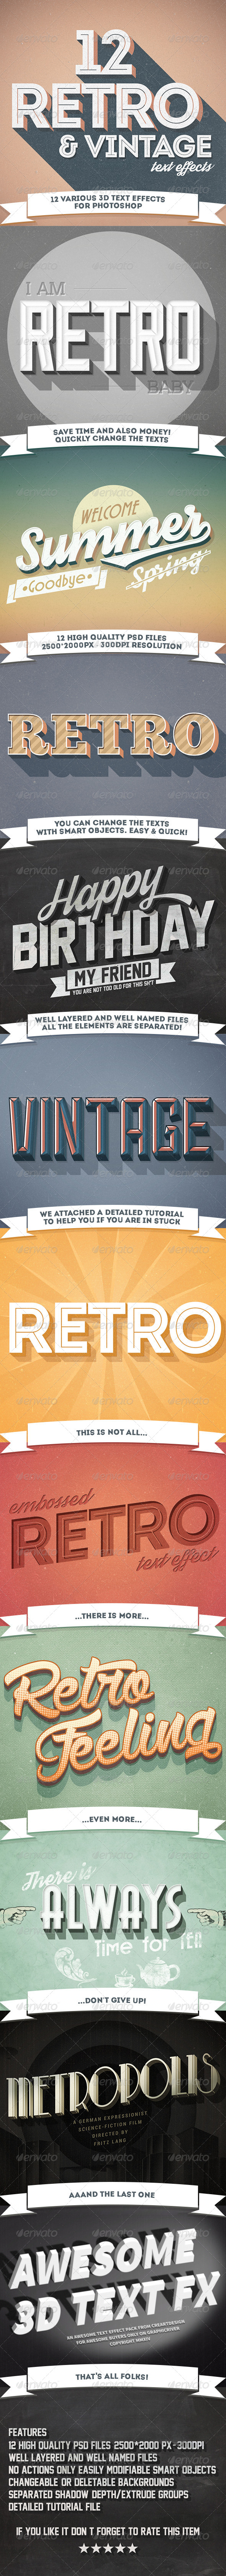 GraphicRiver 12 Various 3D Retro & Vintage Text Effects Pack 7332894